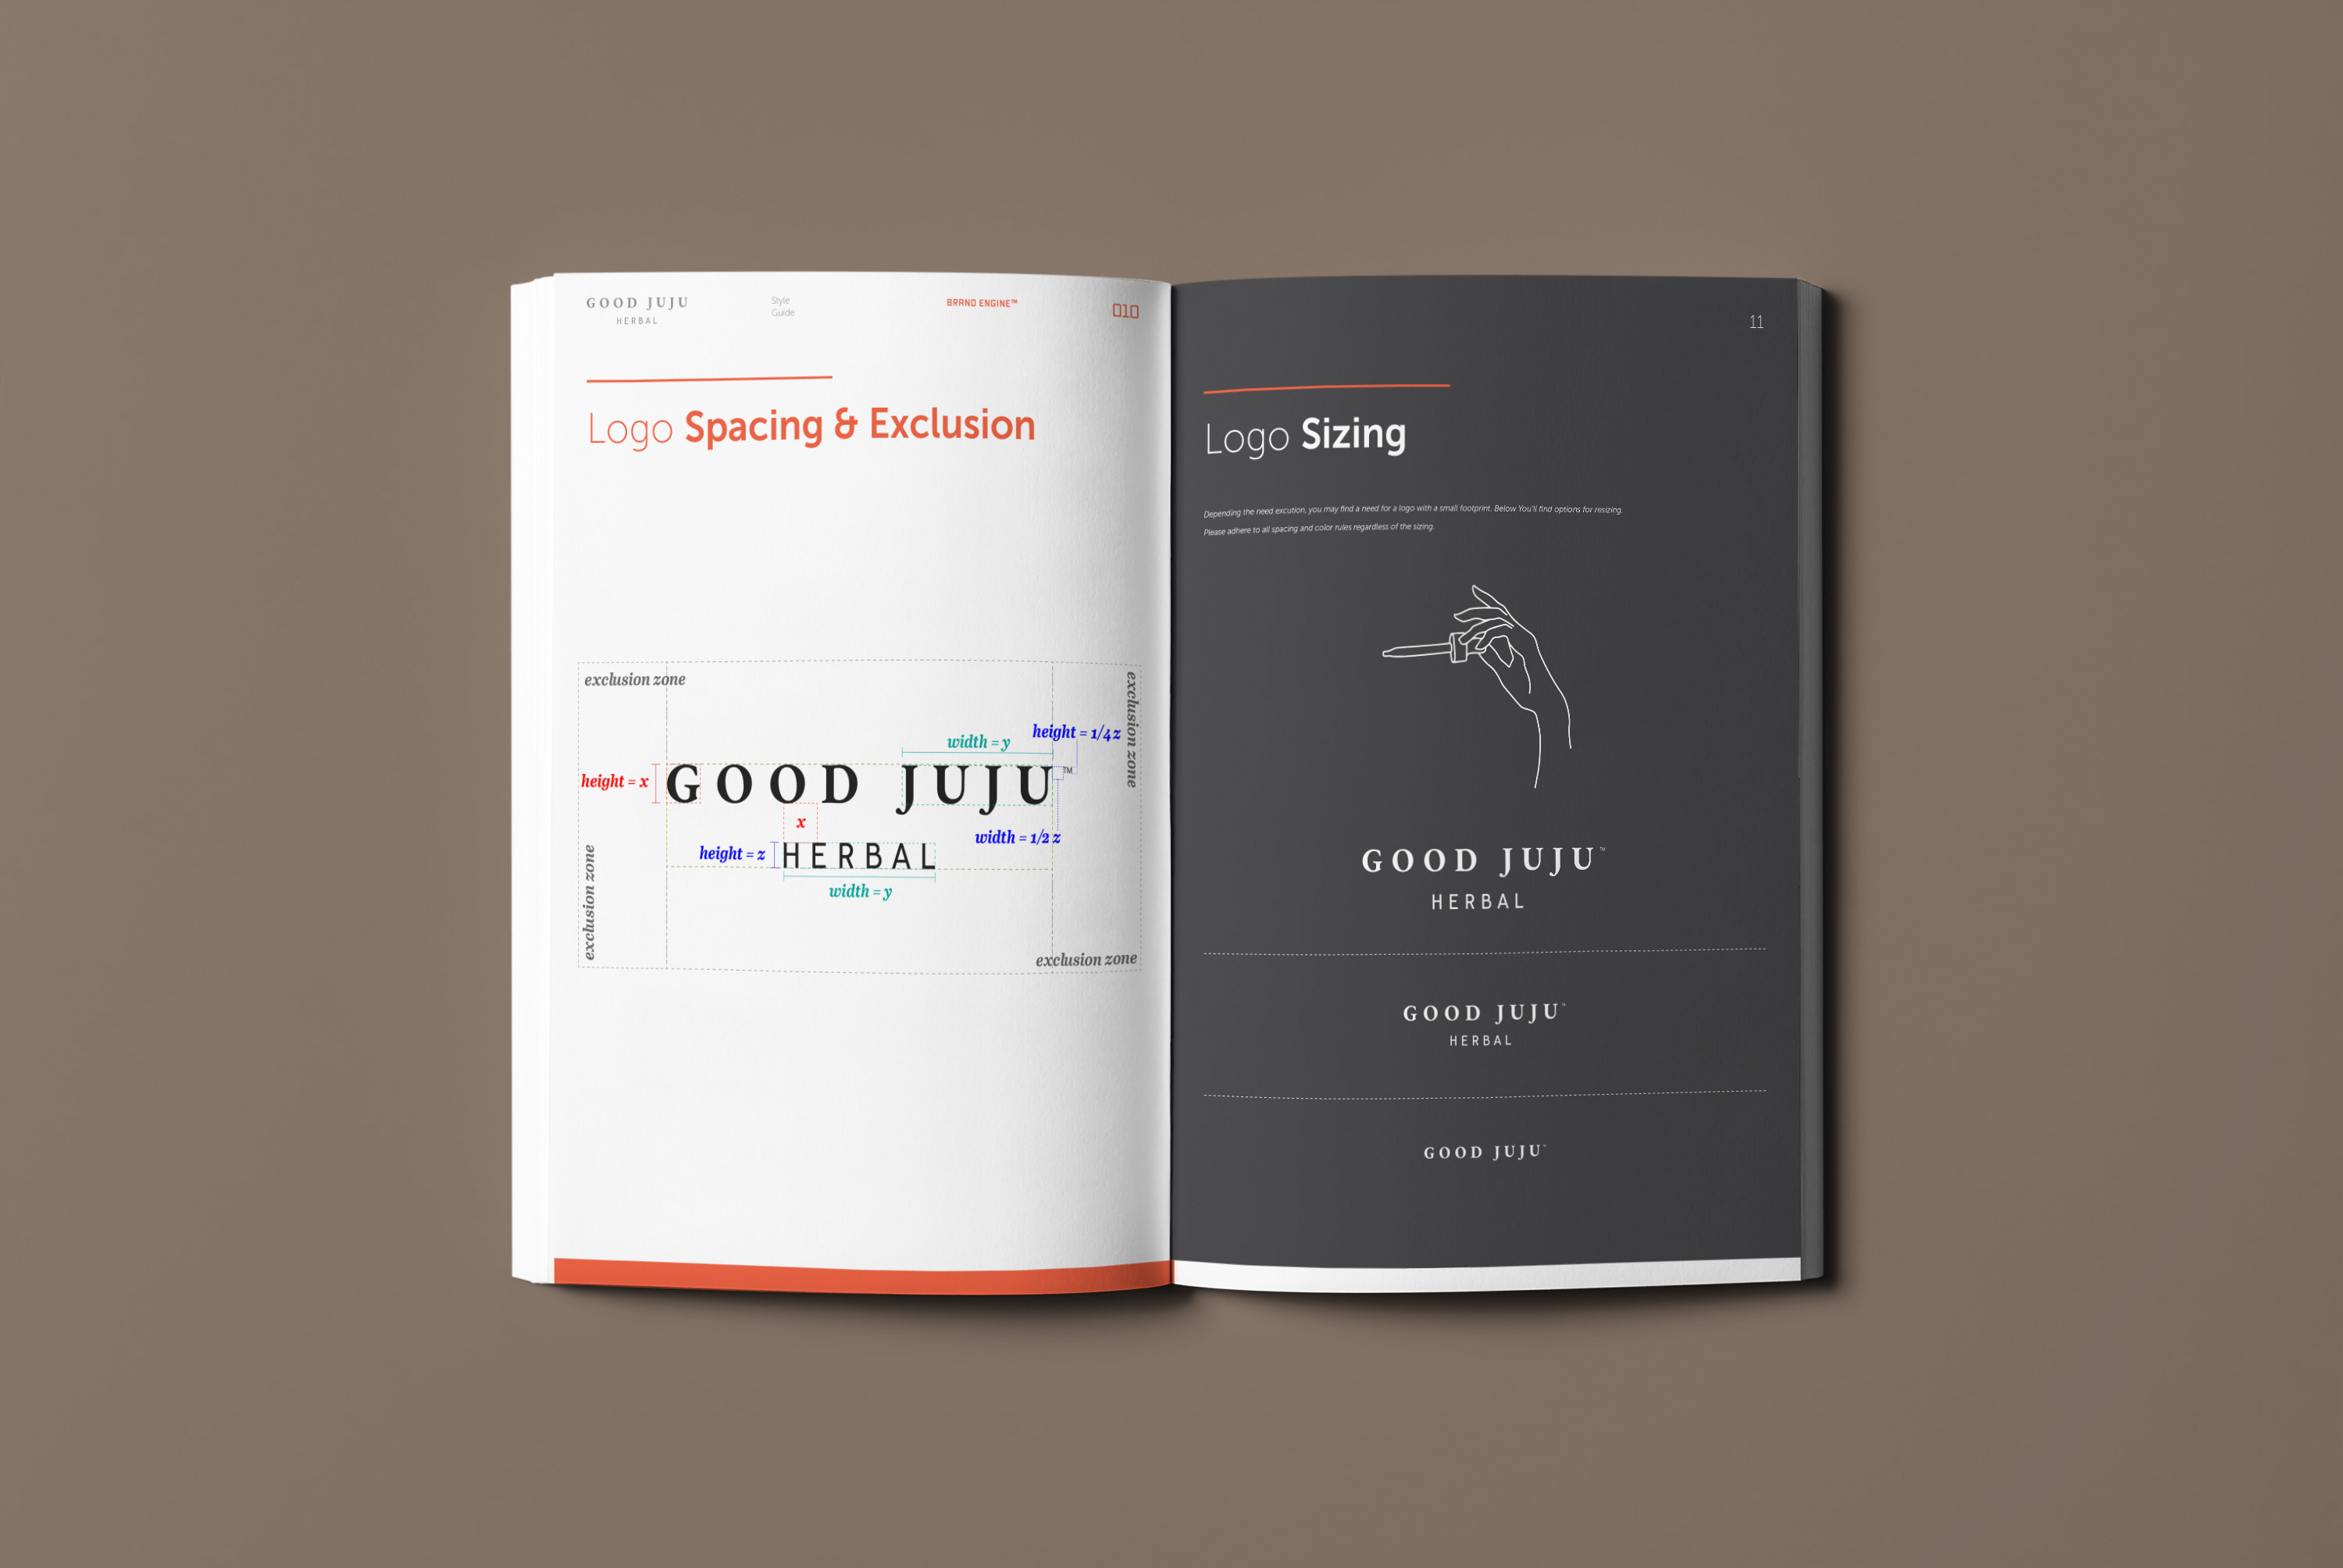 Good Juju Herbal Branding Kit by Brand Engine